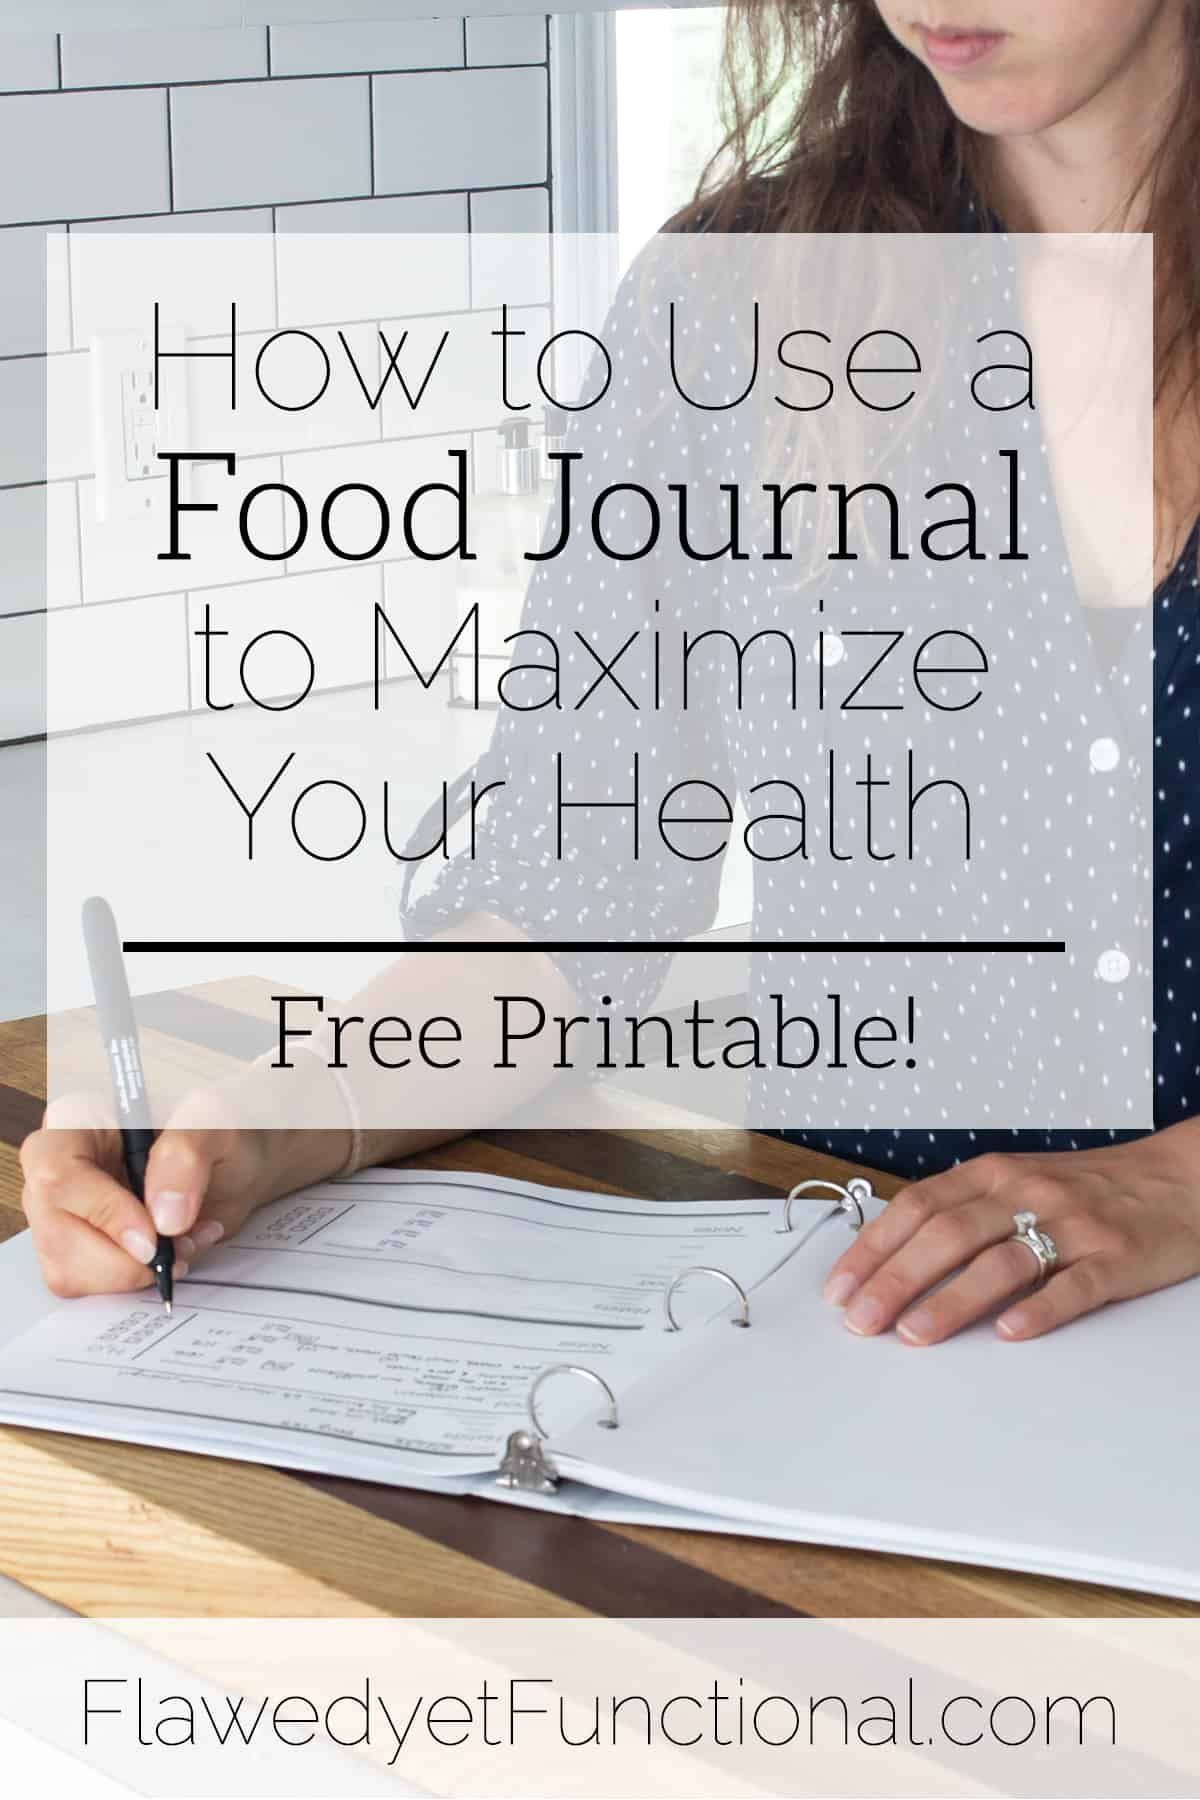 The Secret to Controlling Autoimmune Diseases | The Food Journal